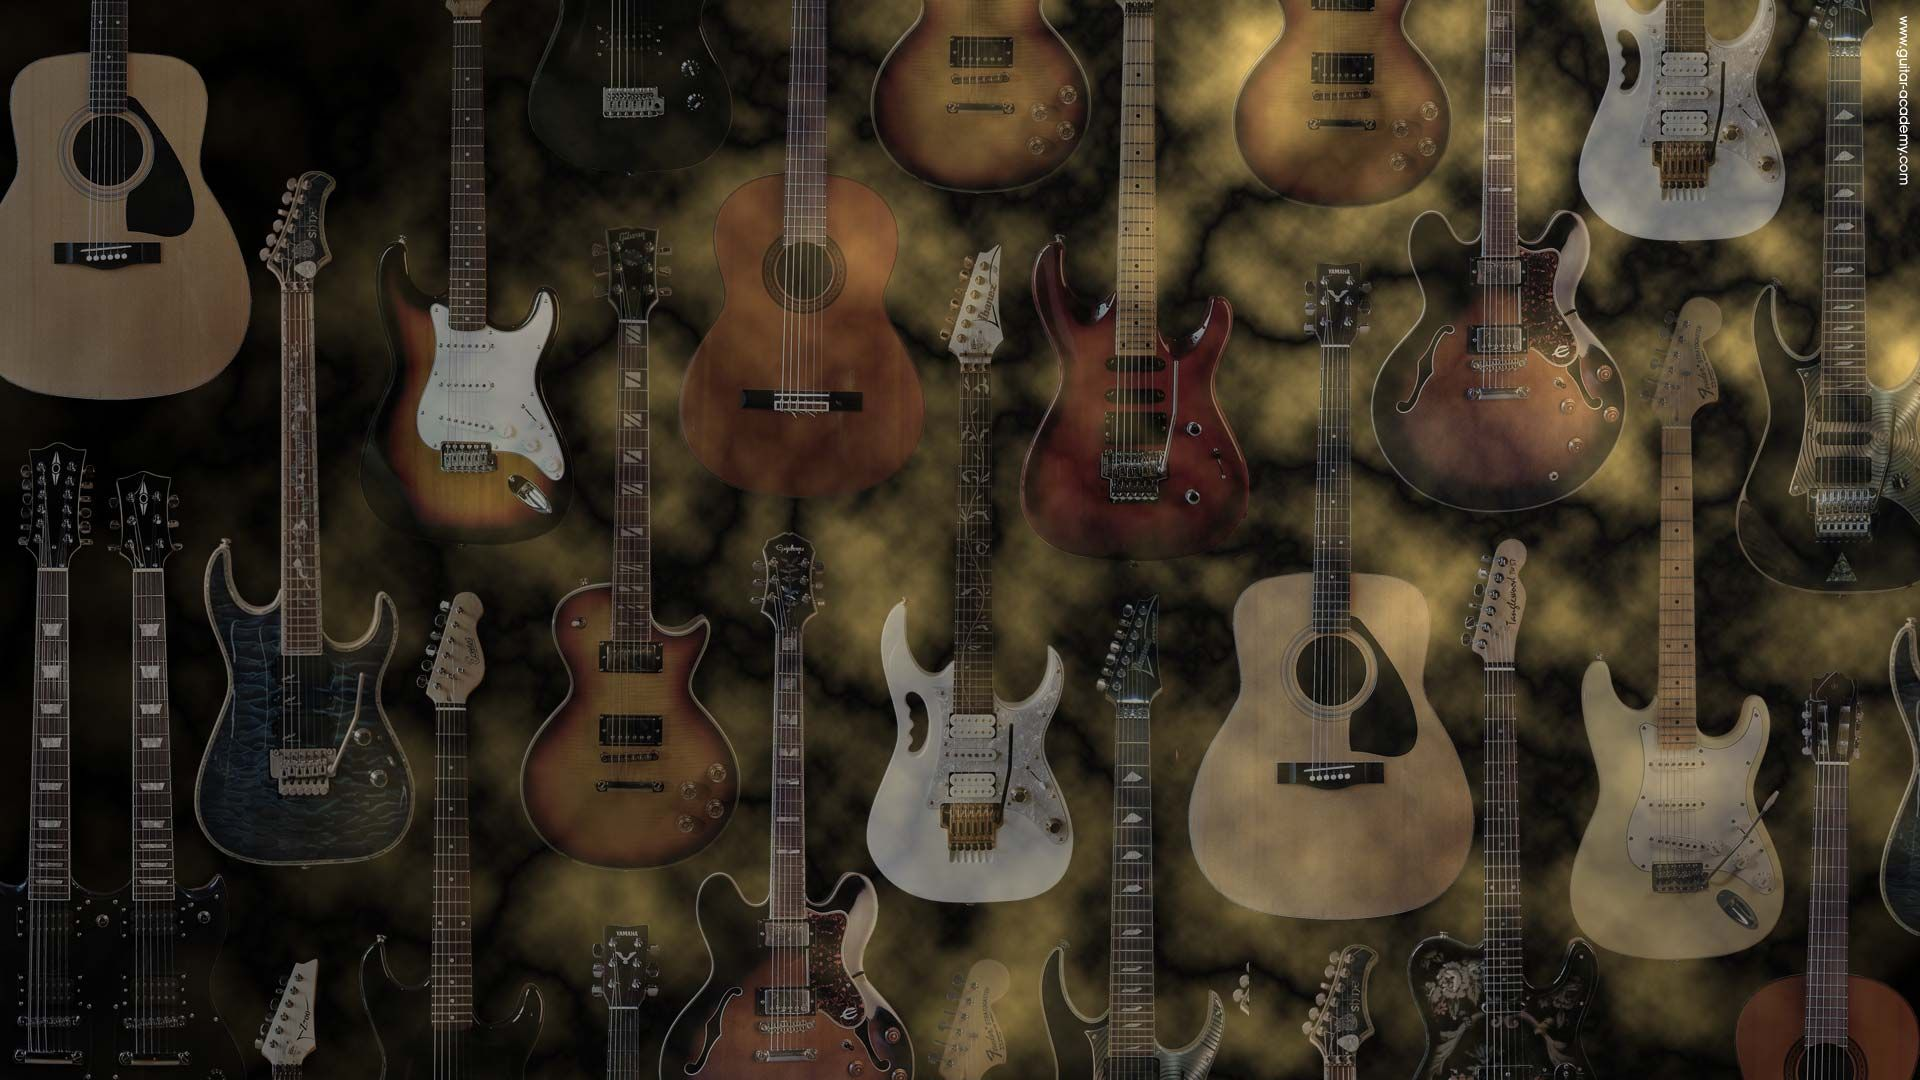 Download Free Modern Acoustic Guitar The Wallpapers 1920x1080